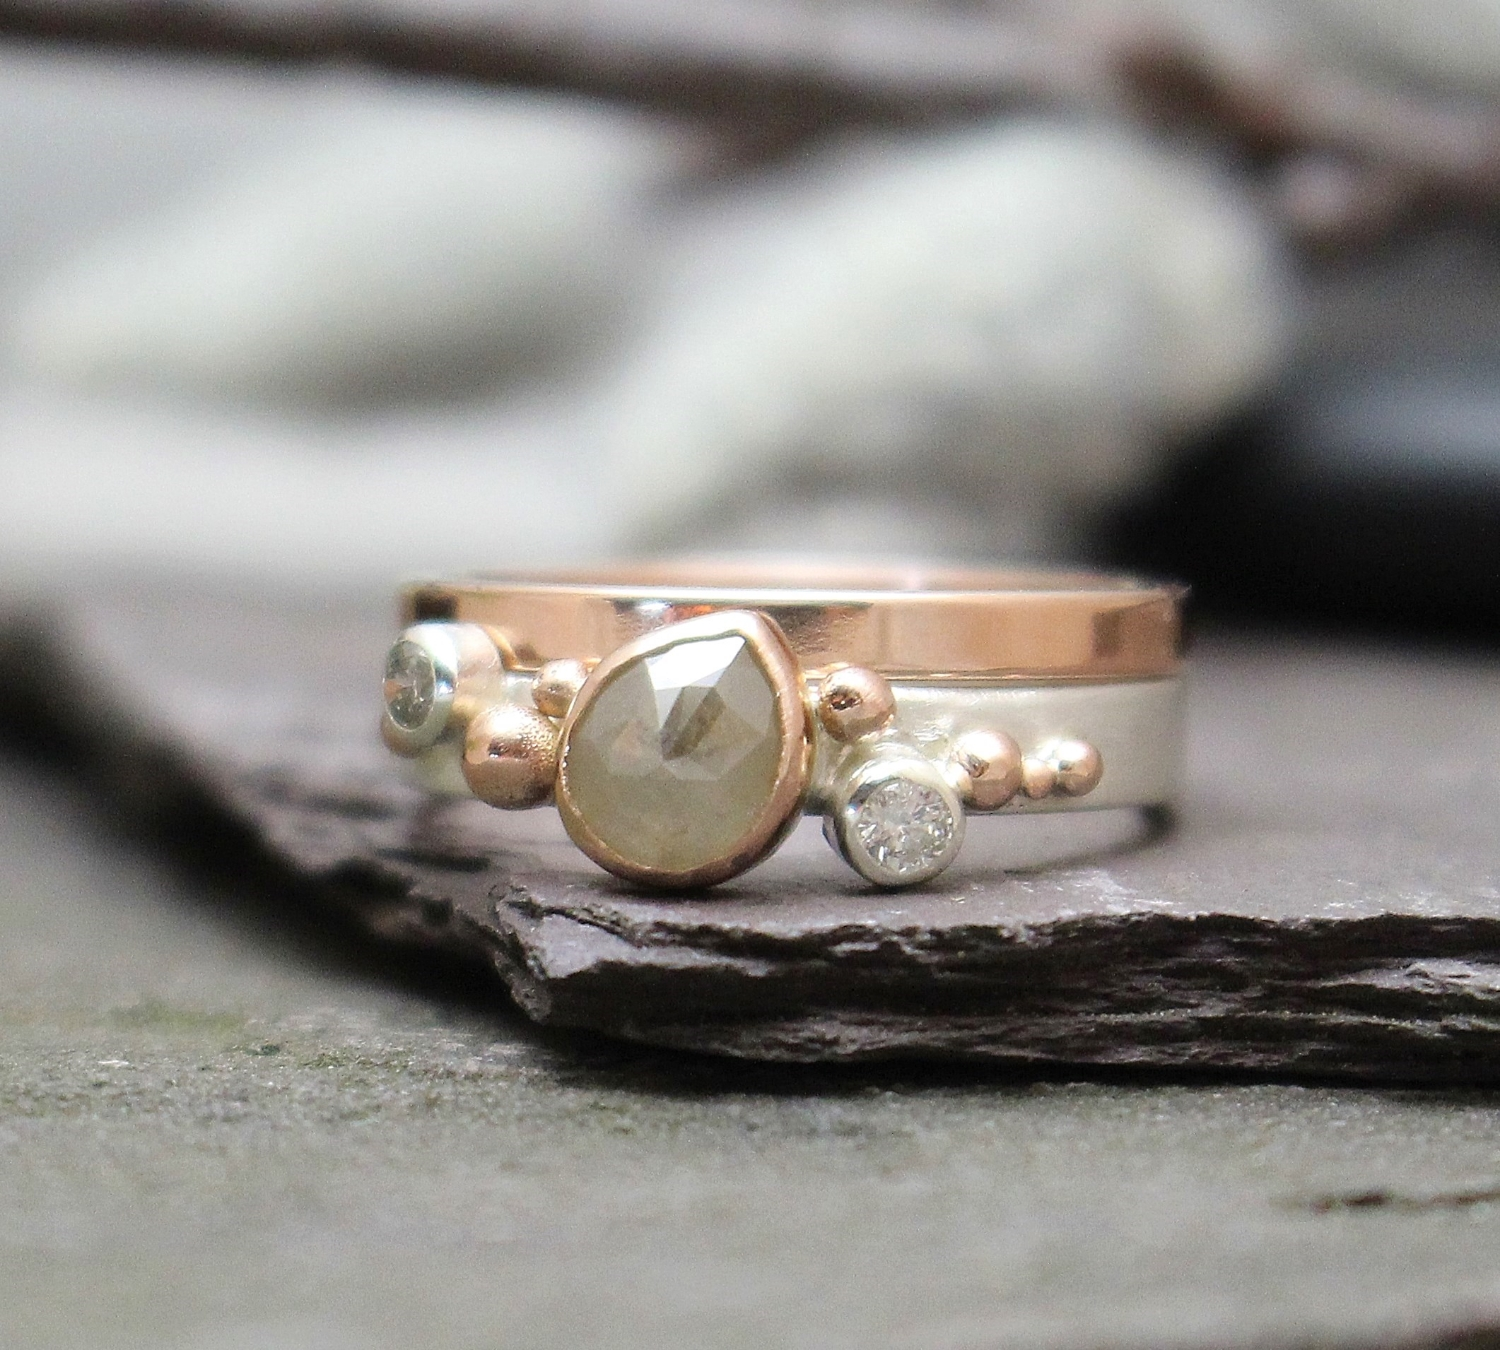 14k White and Rose Gold with Rose-Cut Diamond and Full-Cut Diamond Accents